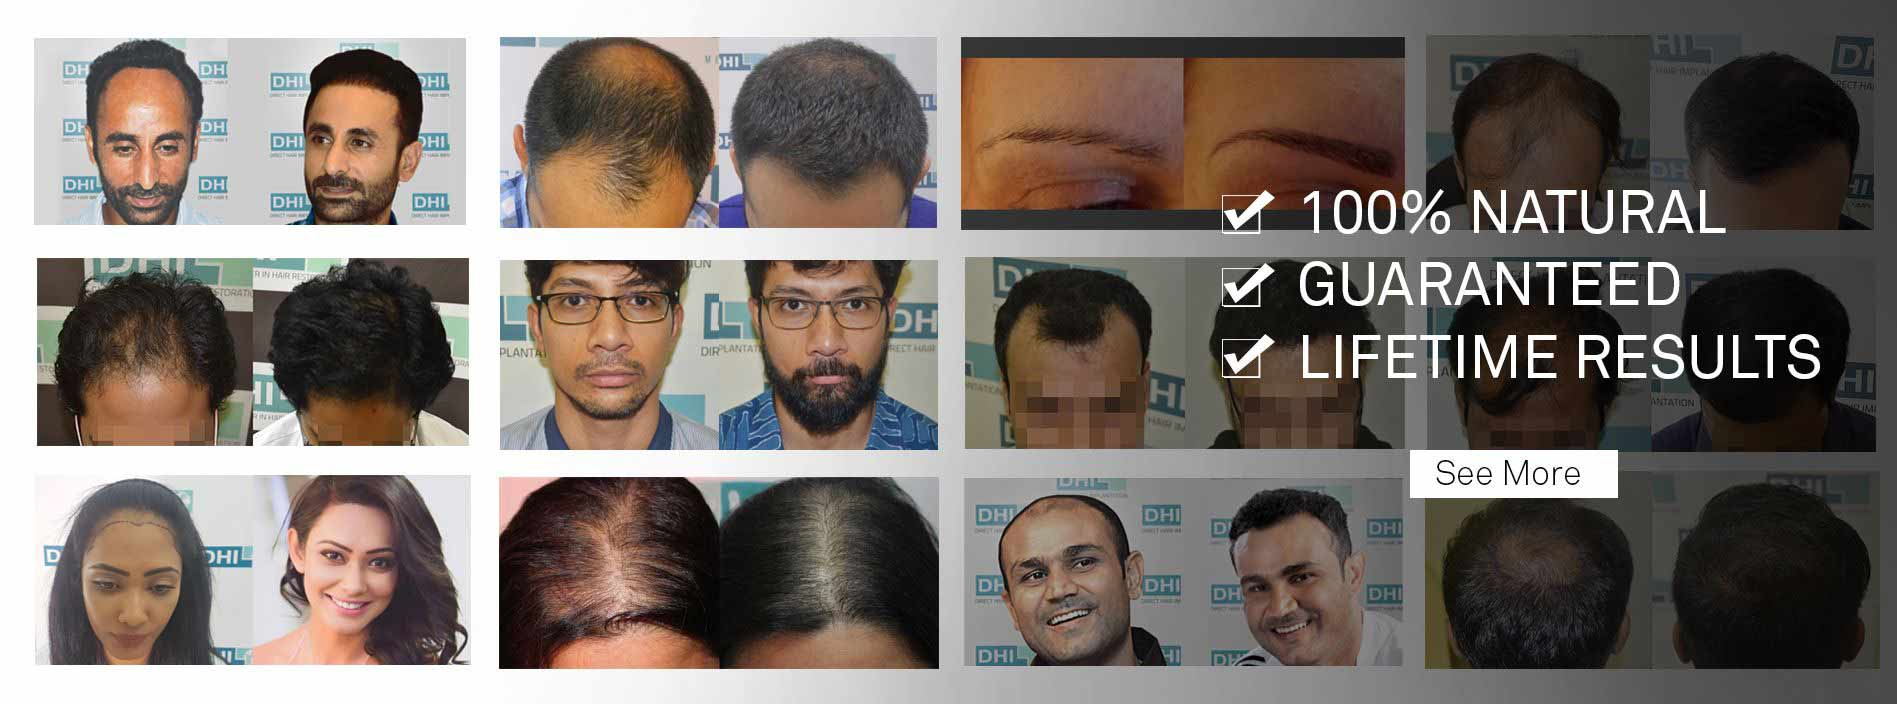 dhi hair transplant results